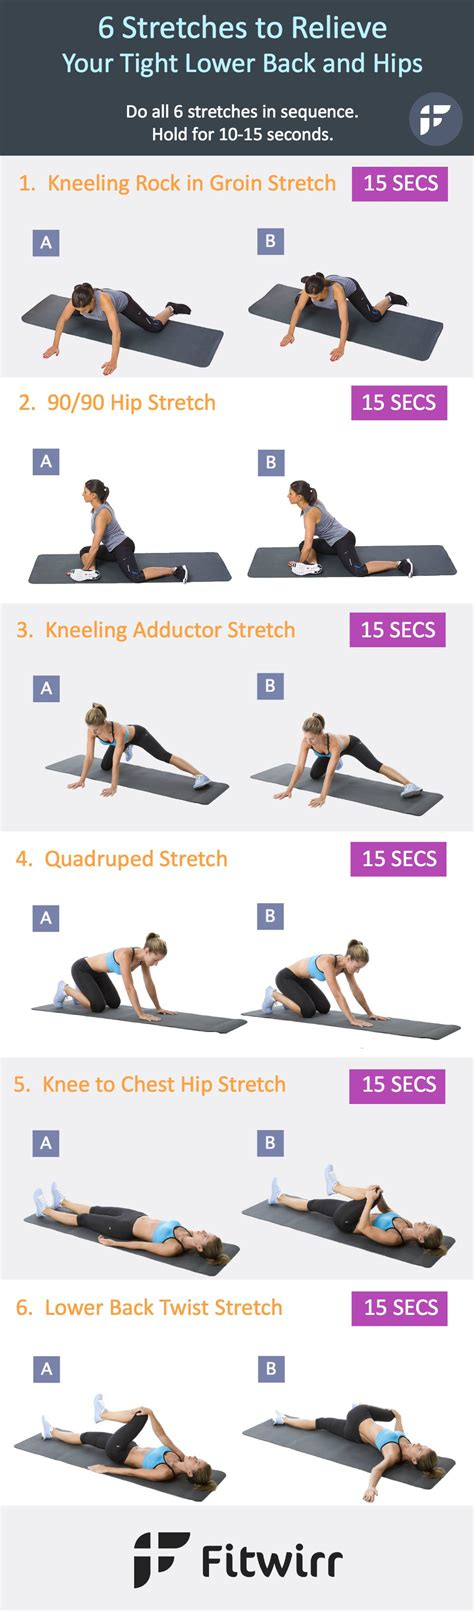 best stretch 6 stretches to relieve your tight lower back and hips